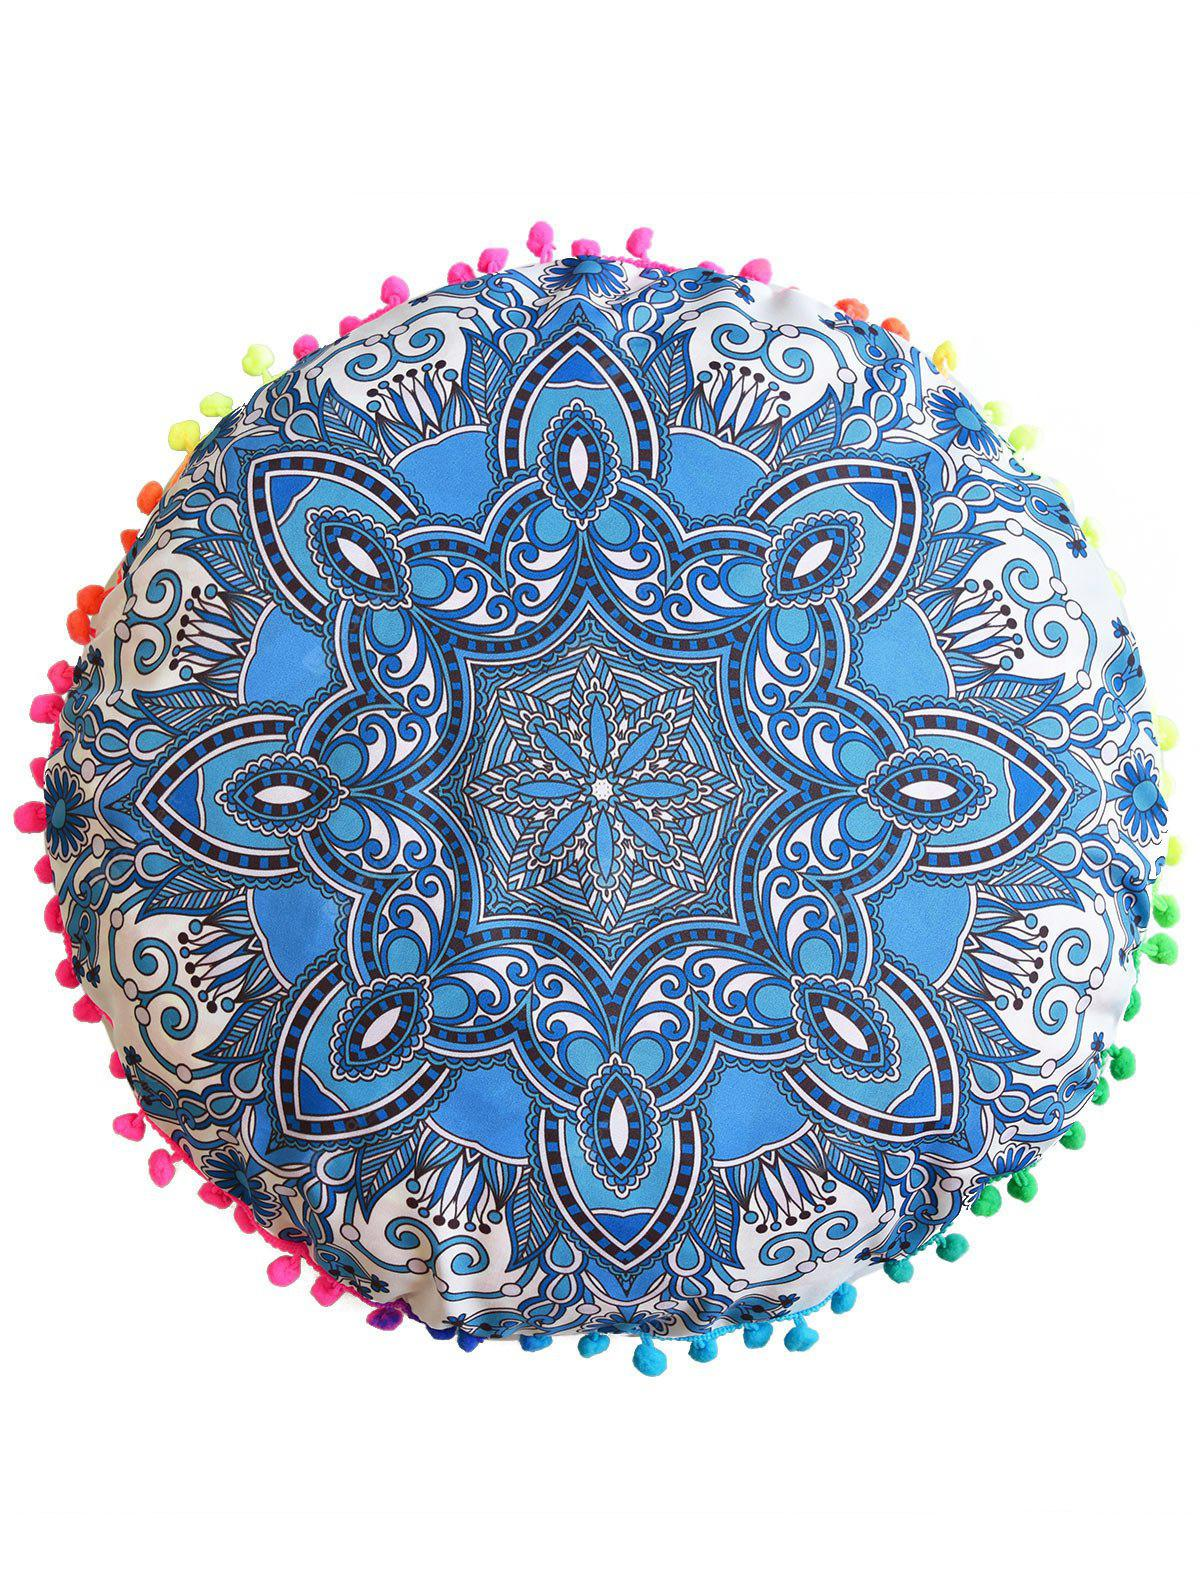 Mandala Print Throw Pouf Cover Round Pillowcase